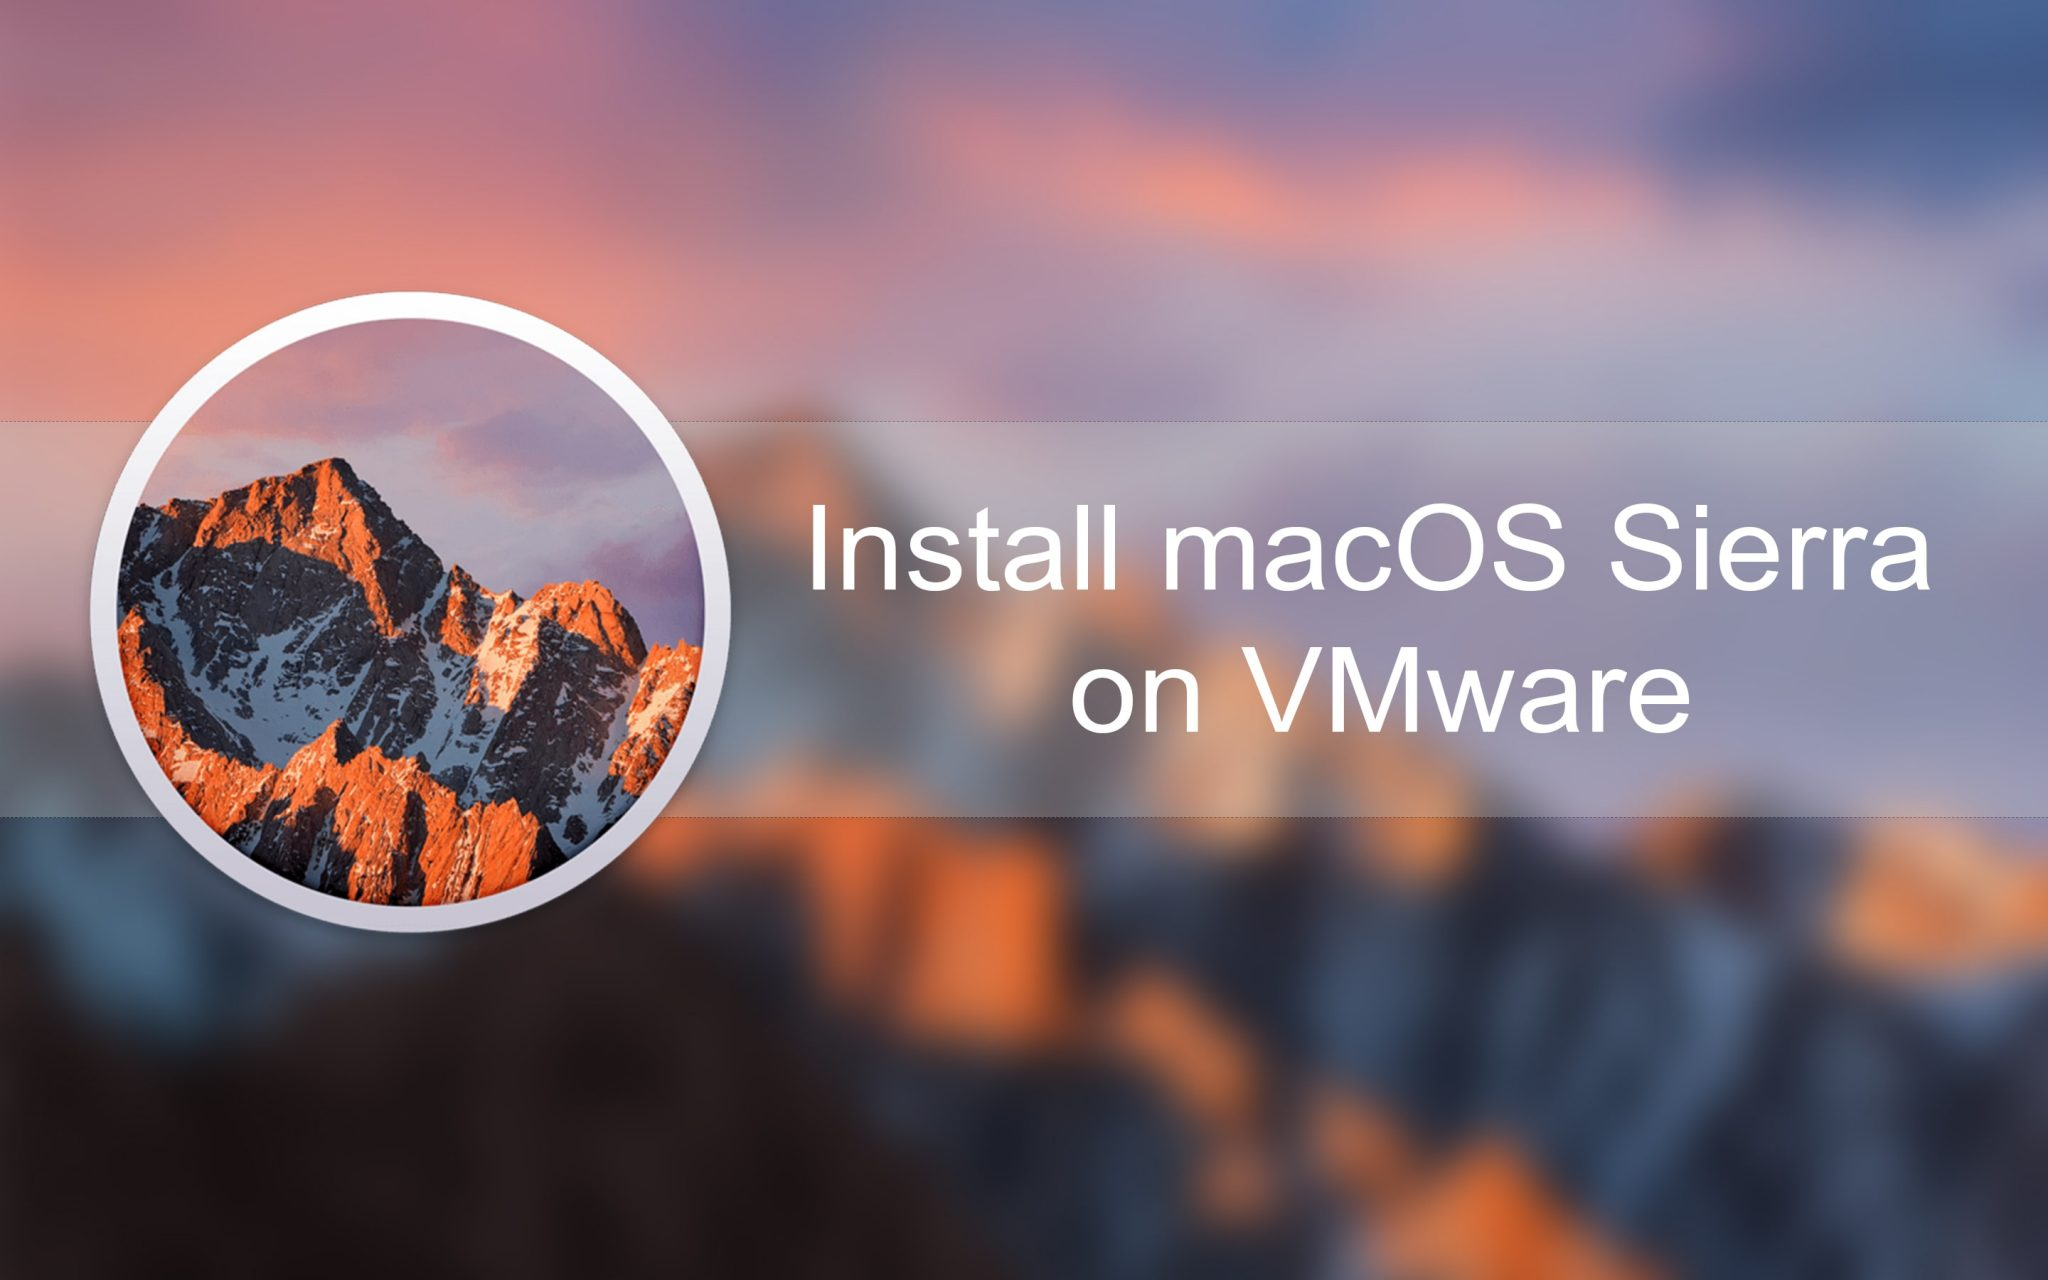 Install macOS Sierra on VMware on Windows PC